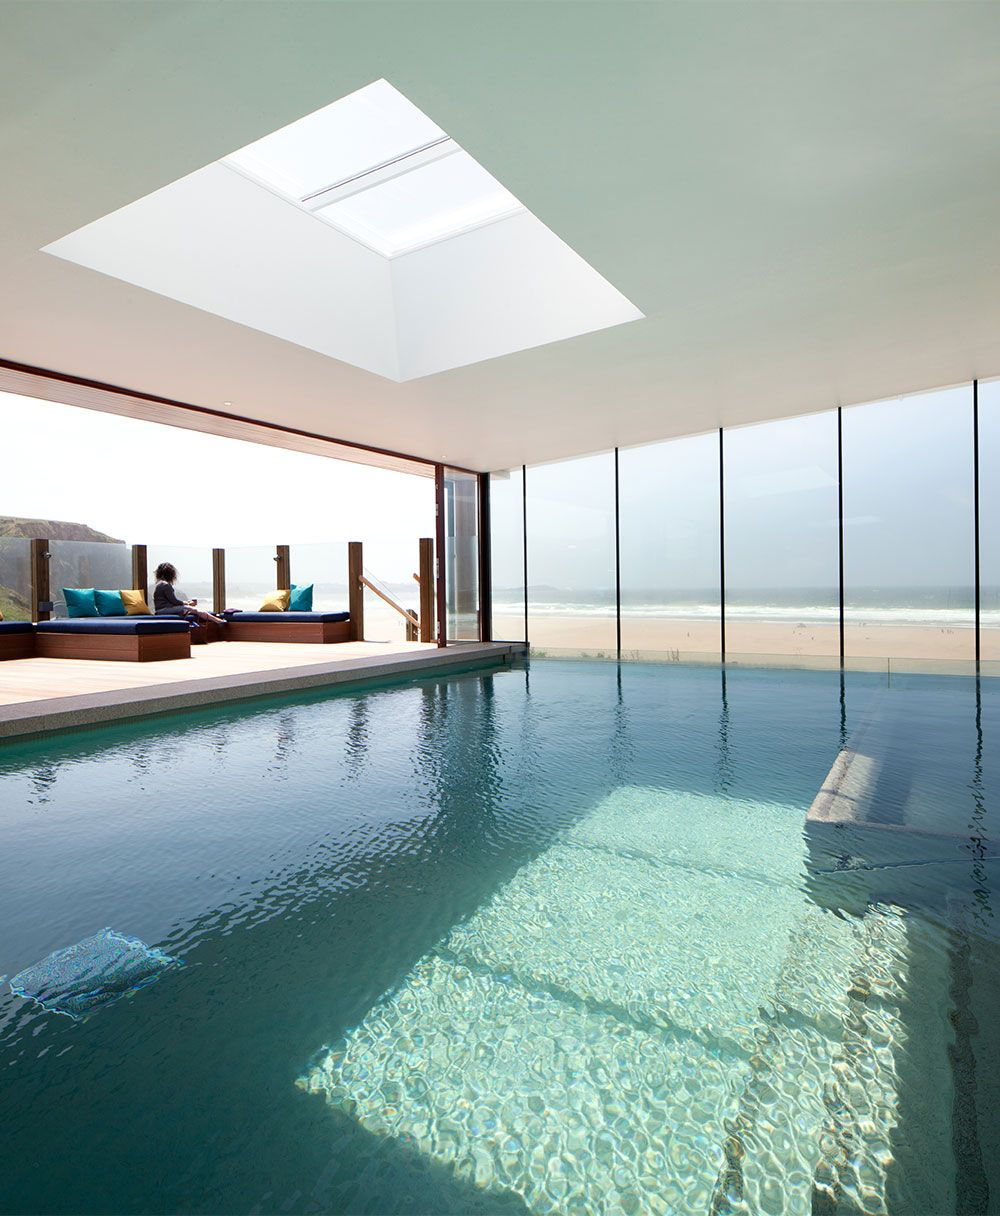 Pool doors open onto the board walk watergate bay hotel - Hotels with swimming pools cornwall ...